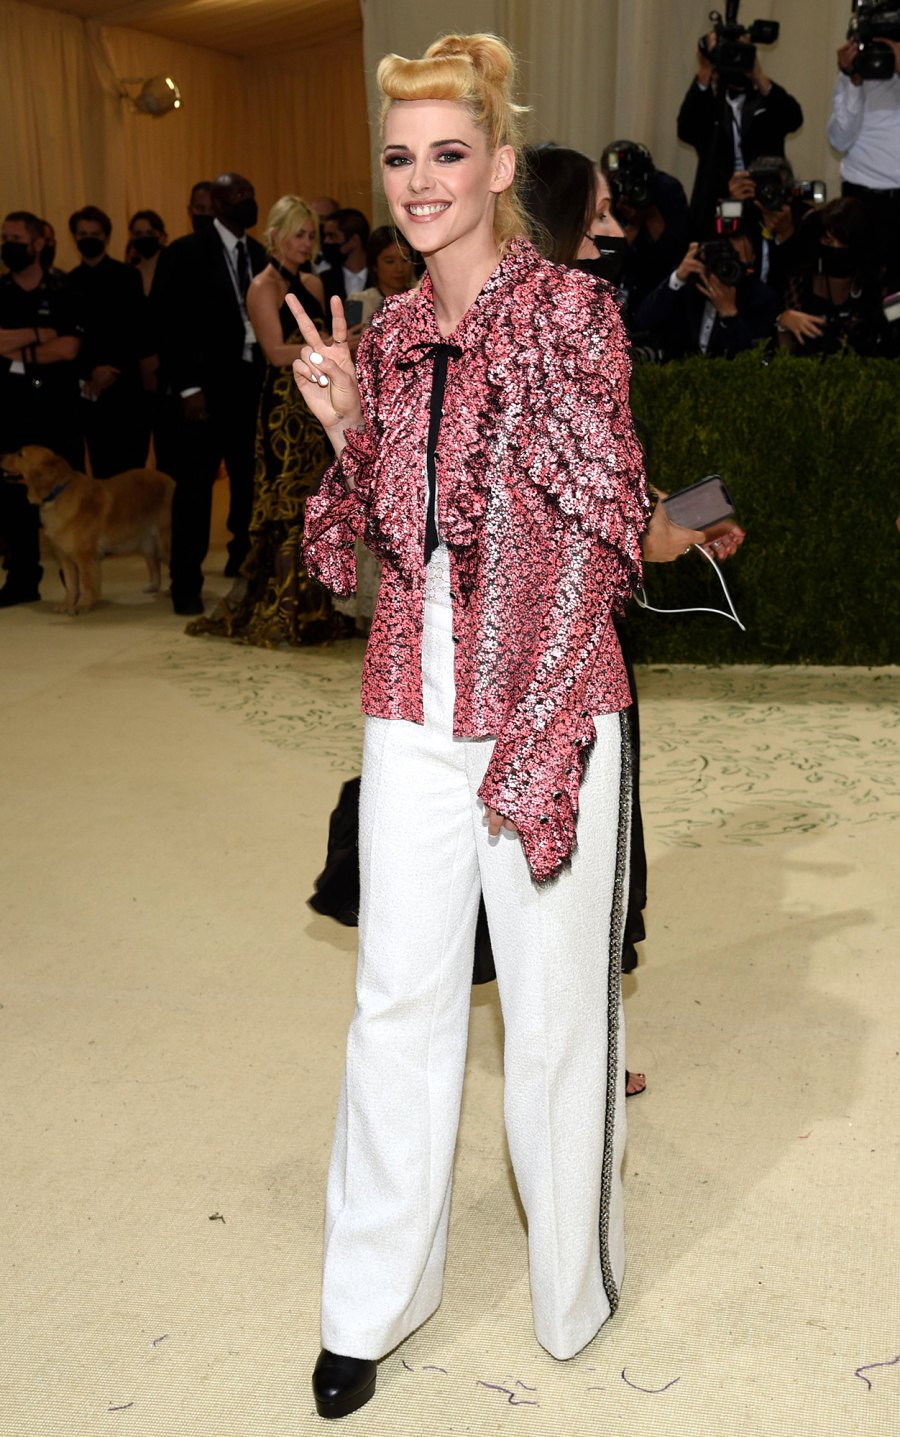 Pink! Peace Signs! Kristen Stewart Serves Up All the Retro Vibes at the 2021 Met Gala